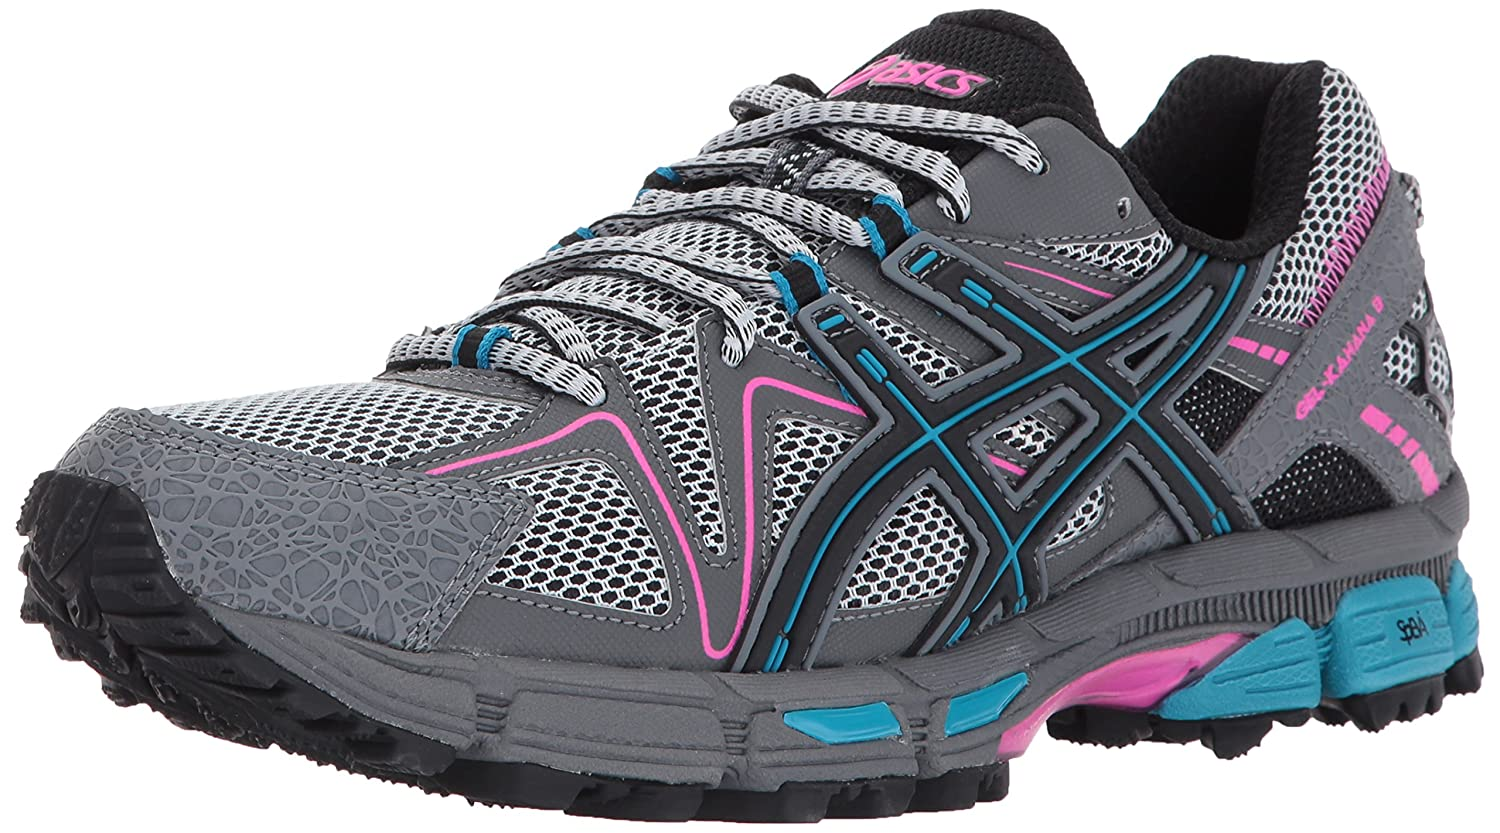 ASICS Women's Gel-Kahana 8 Running Shoe B01MQGGDLY 12 B(M) US|Black/Island Blue/Pink Glow